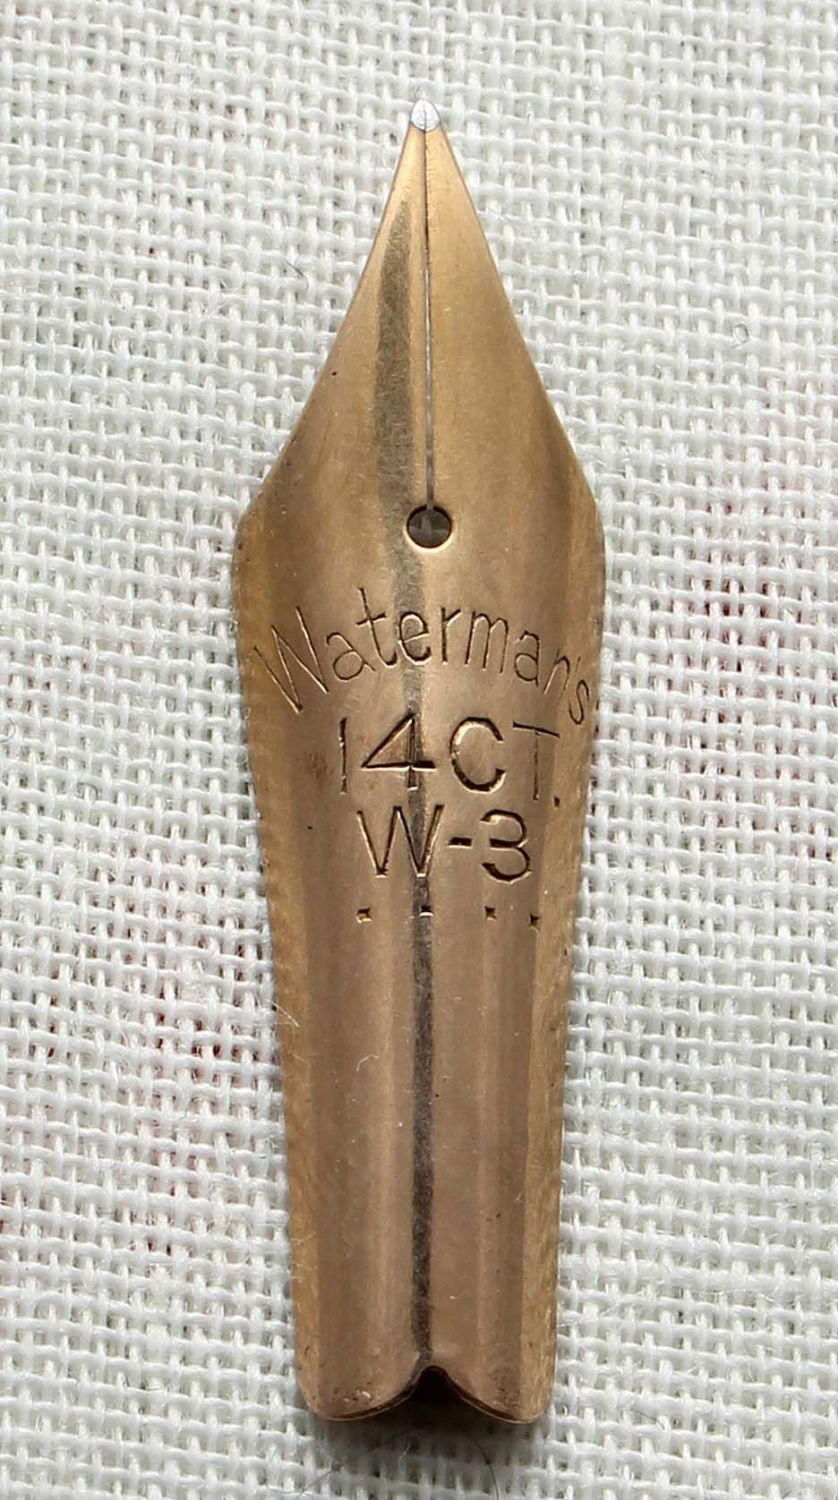 Watermans W3 Nib. (Fine) N556